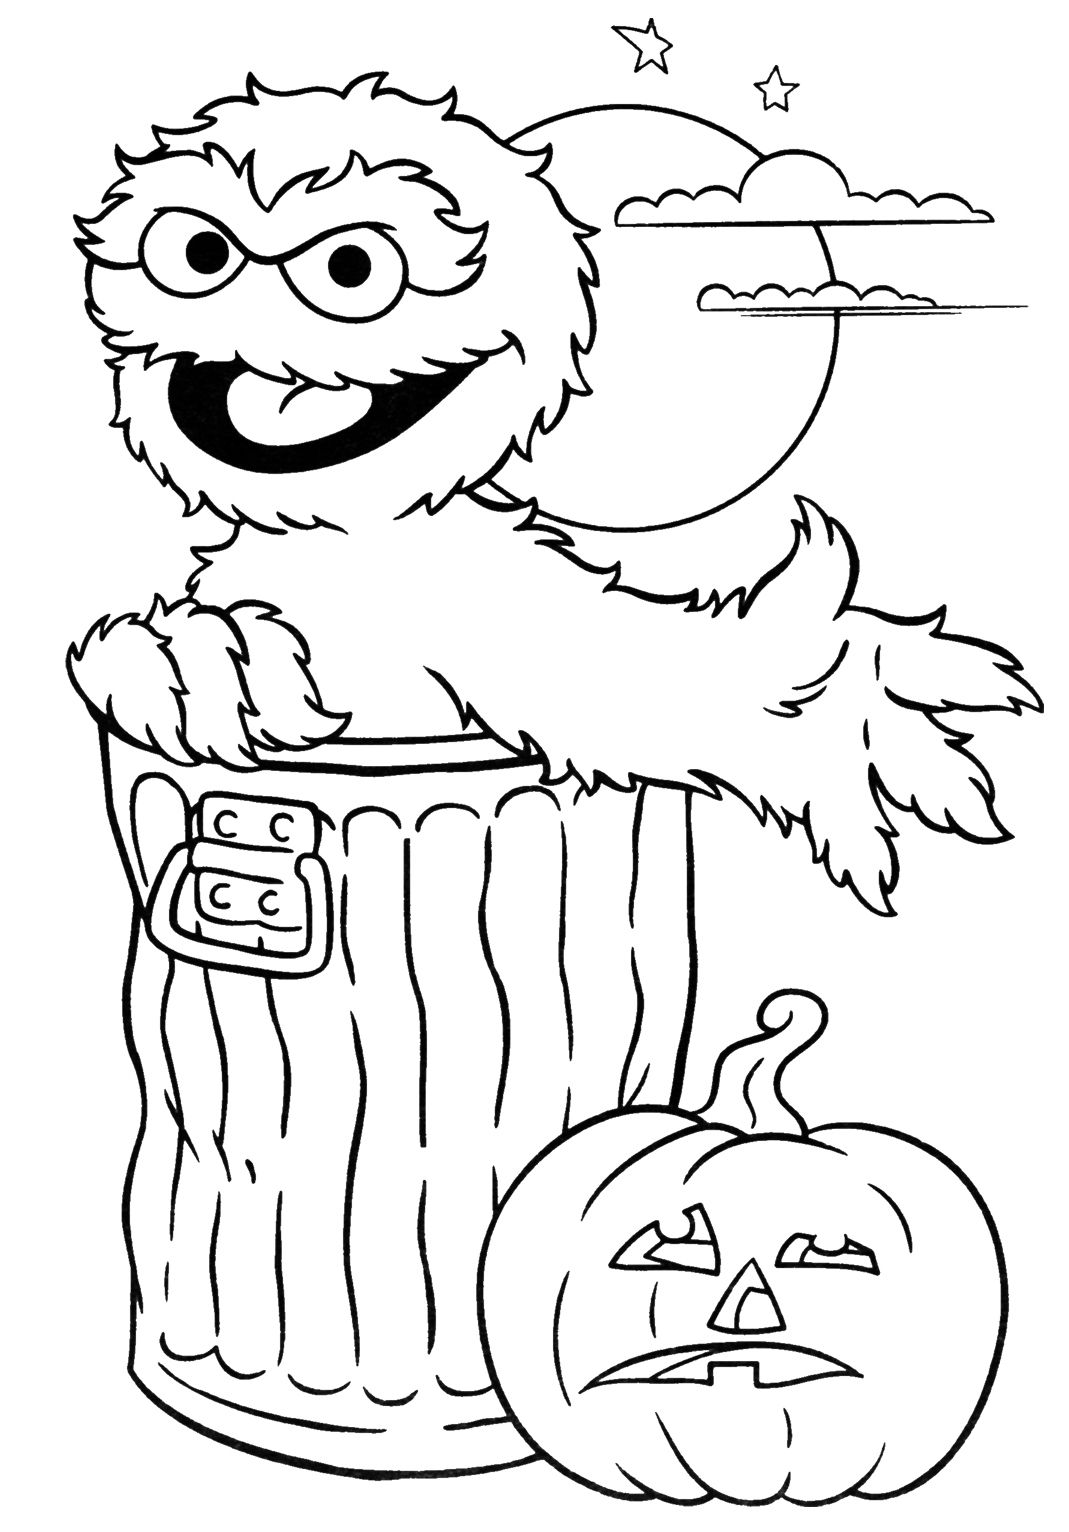 Uncategorized Oscar The Grouch Coloring Page oscar the grouch coloring page home halloween and pages grouch